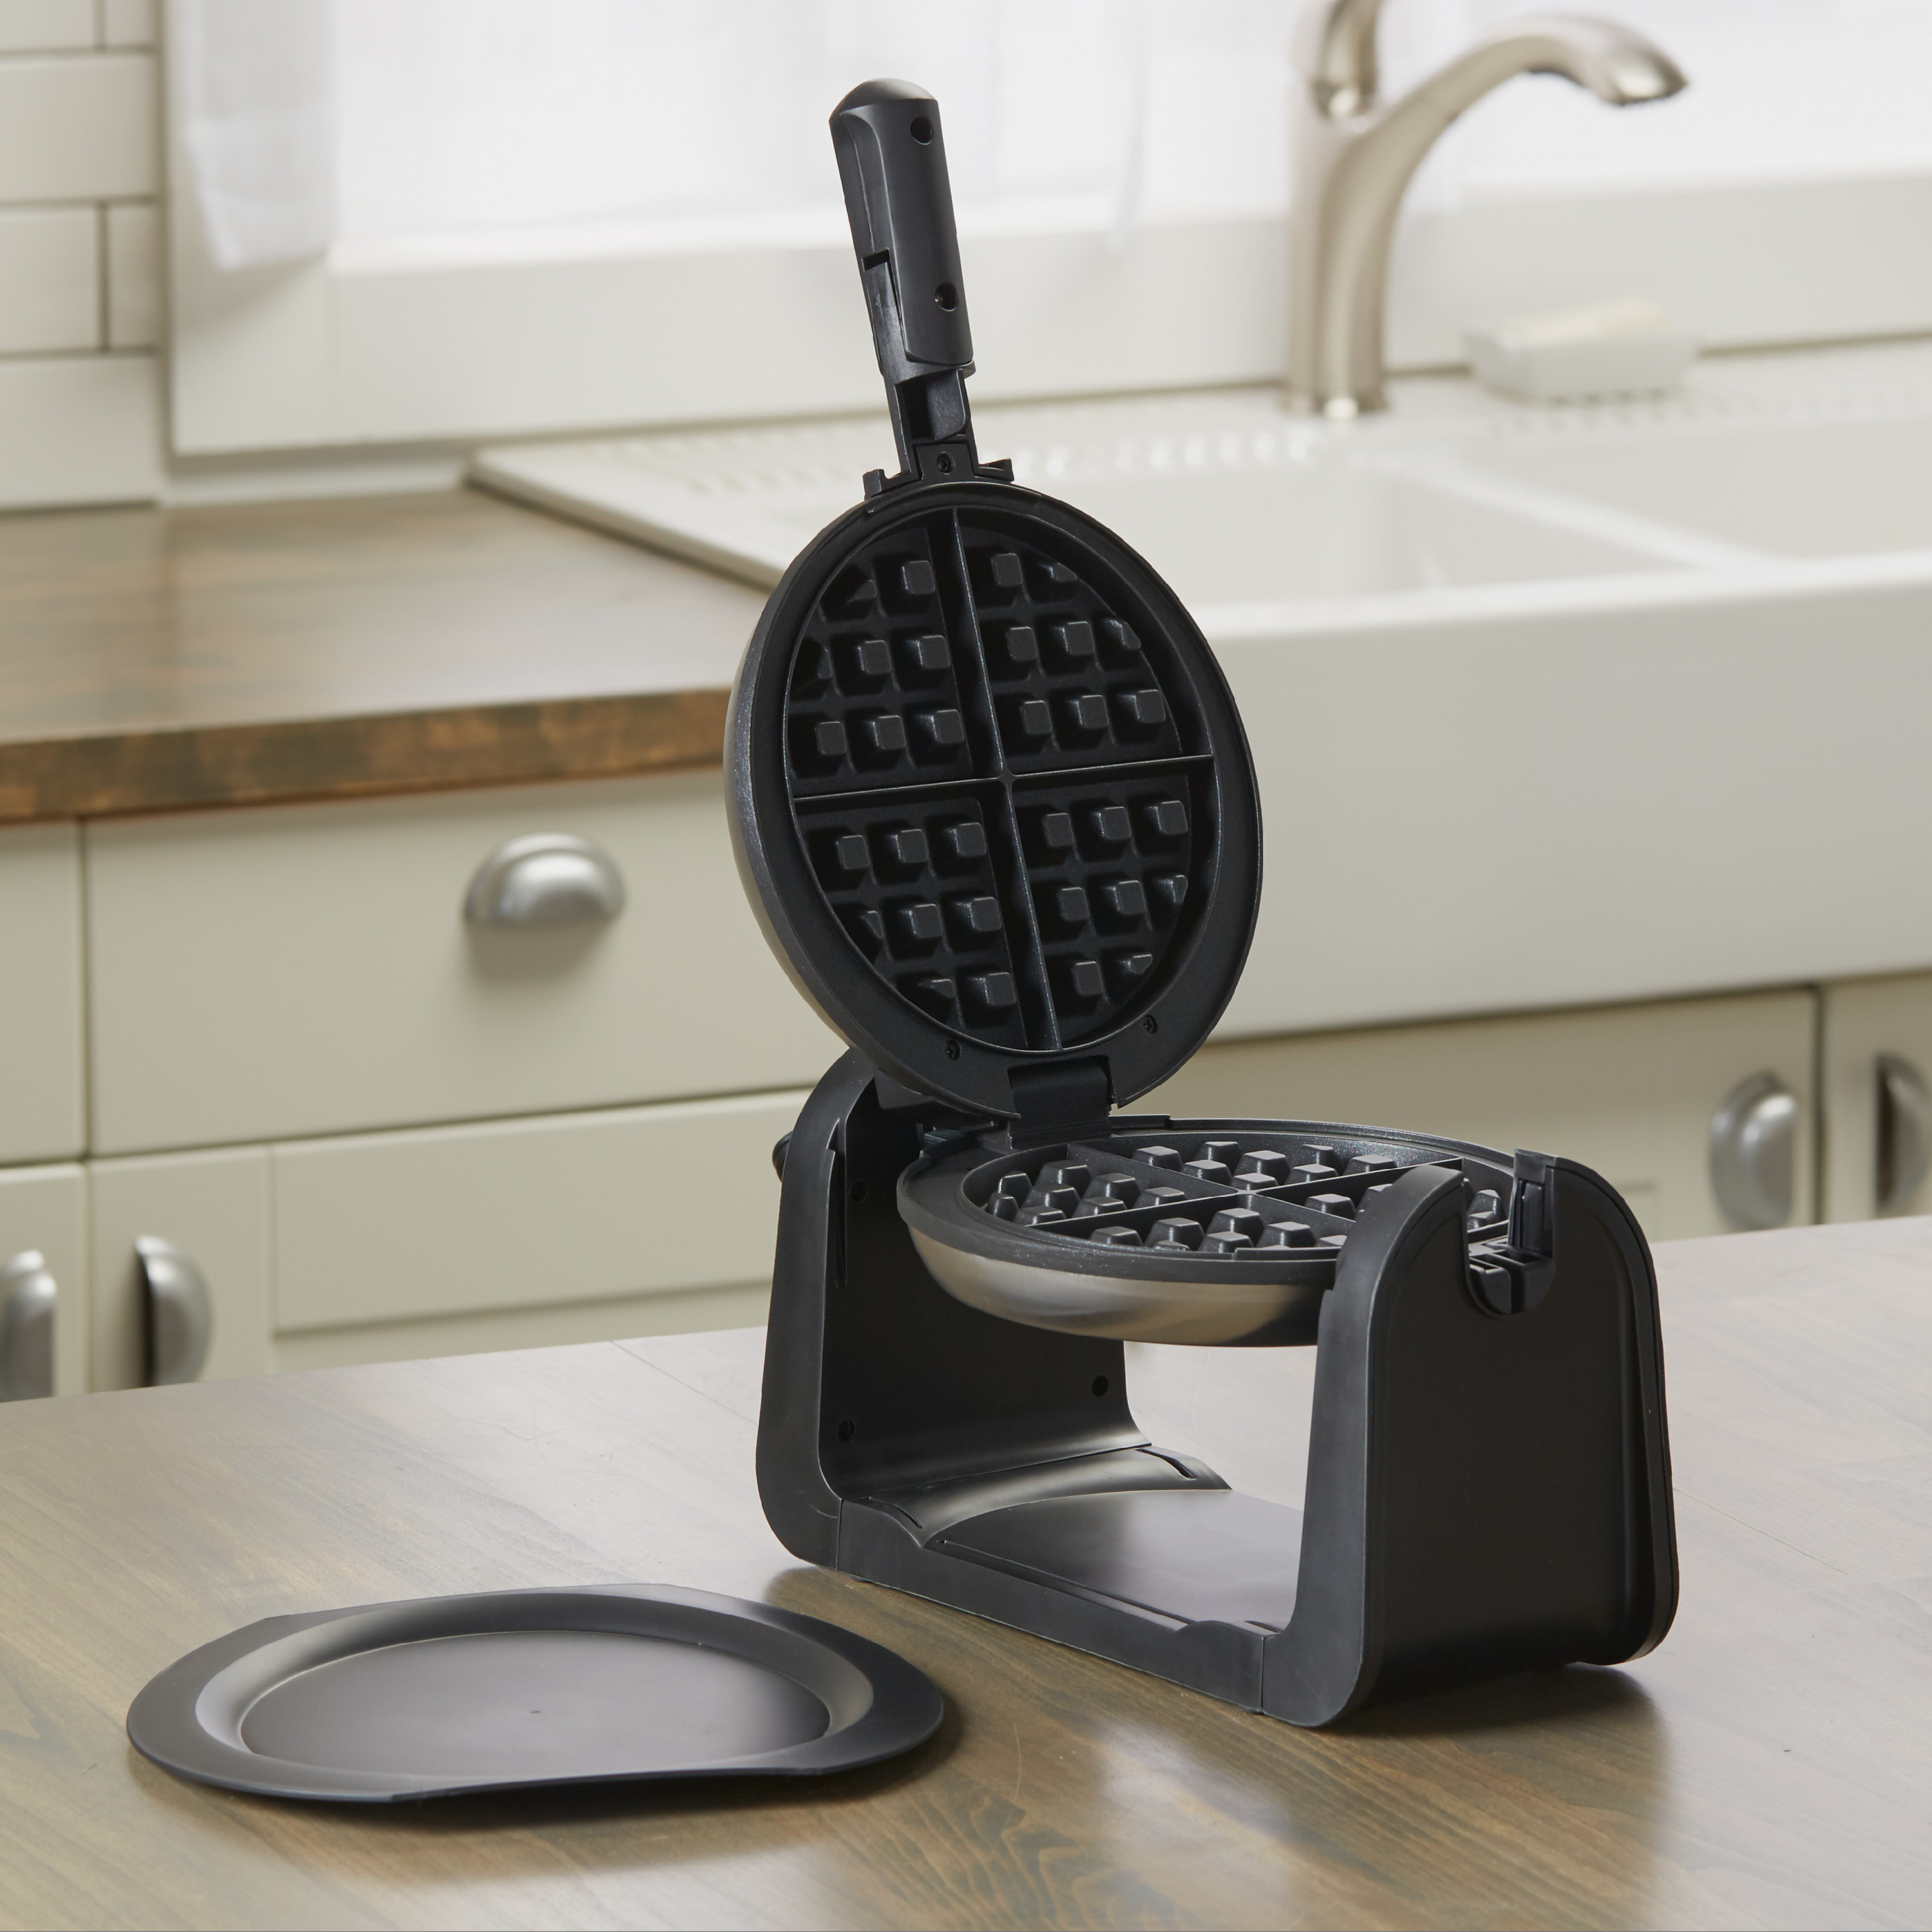 the waffle maker open in the kitchen